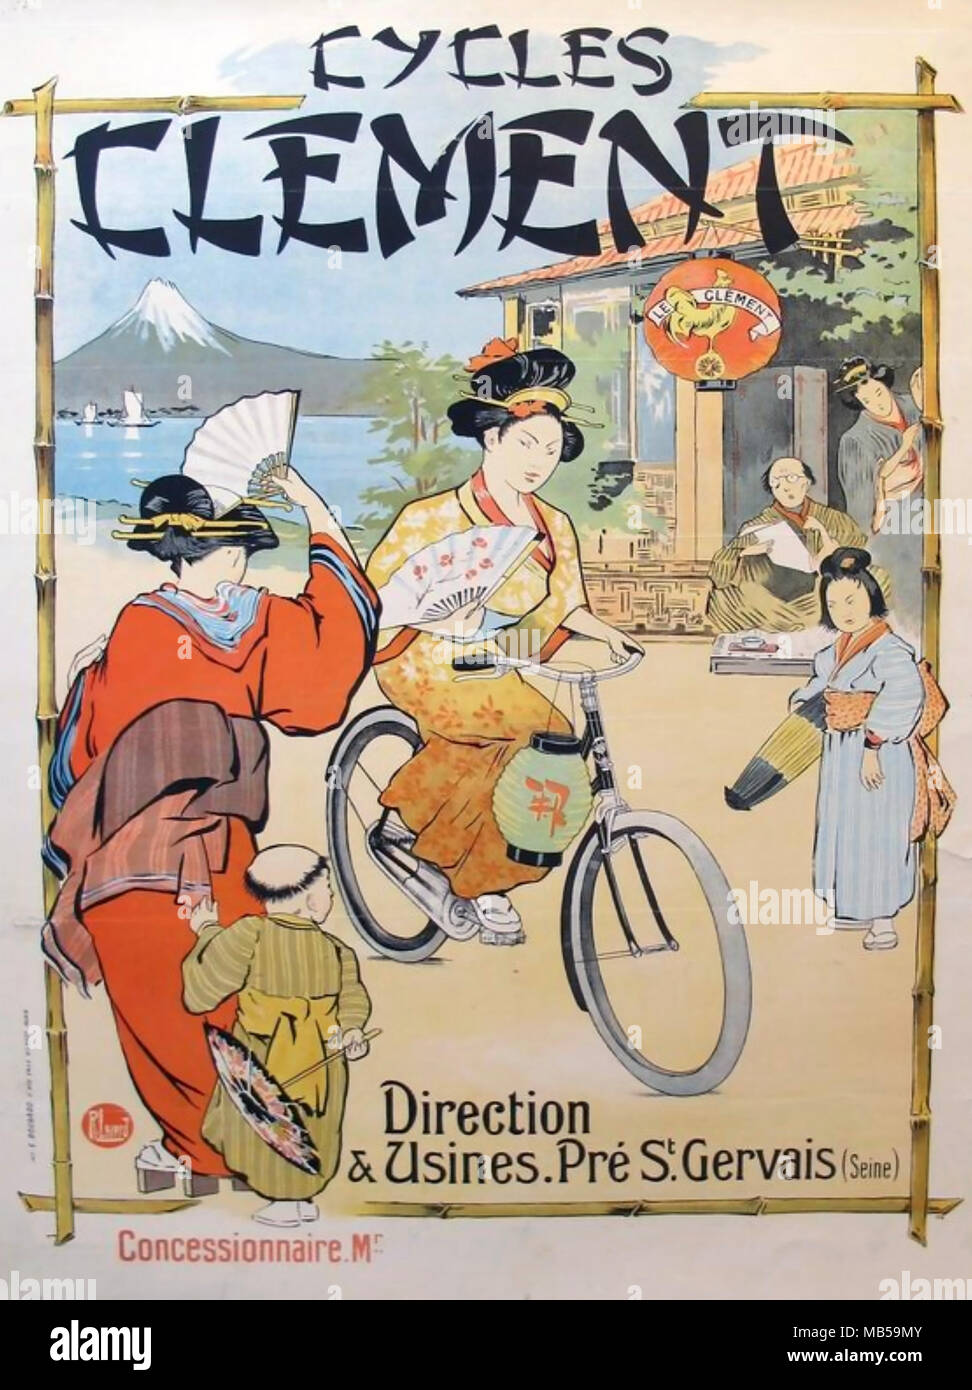 CLEMENT CYCLES French bicycle company advert about 1905 promoting sales in Japan - Stock Image